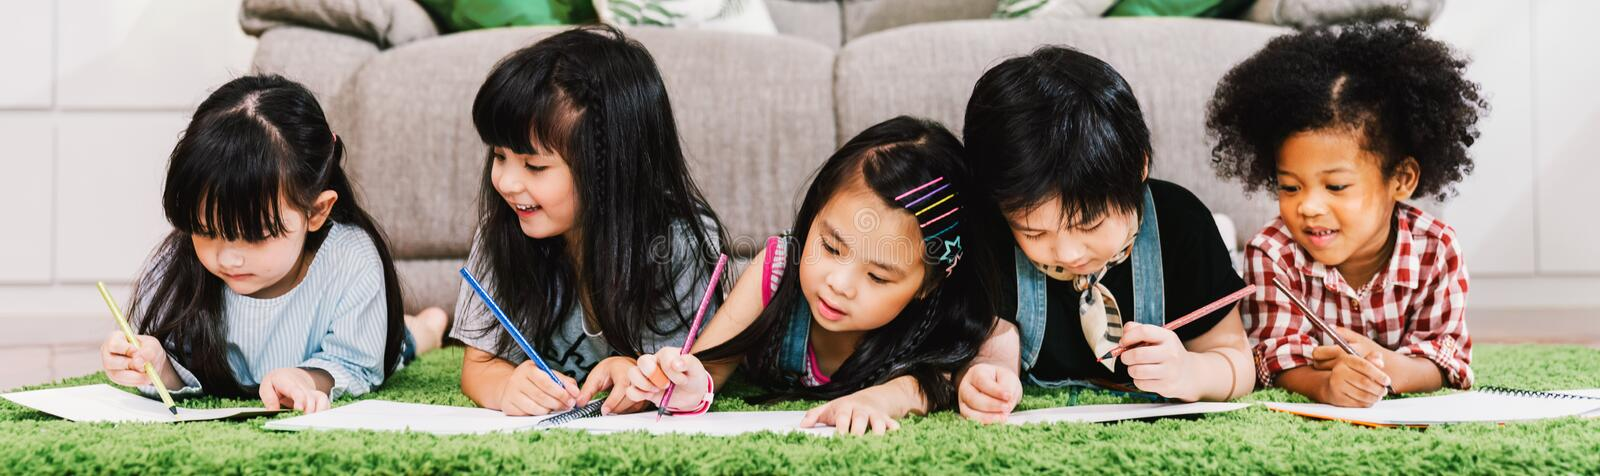 Group of five multi-ethnic young cute preschool kids, boy and girls happy study or drawing together at home or school royalty free stock photo